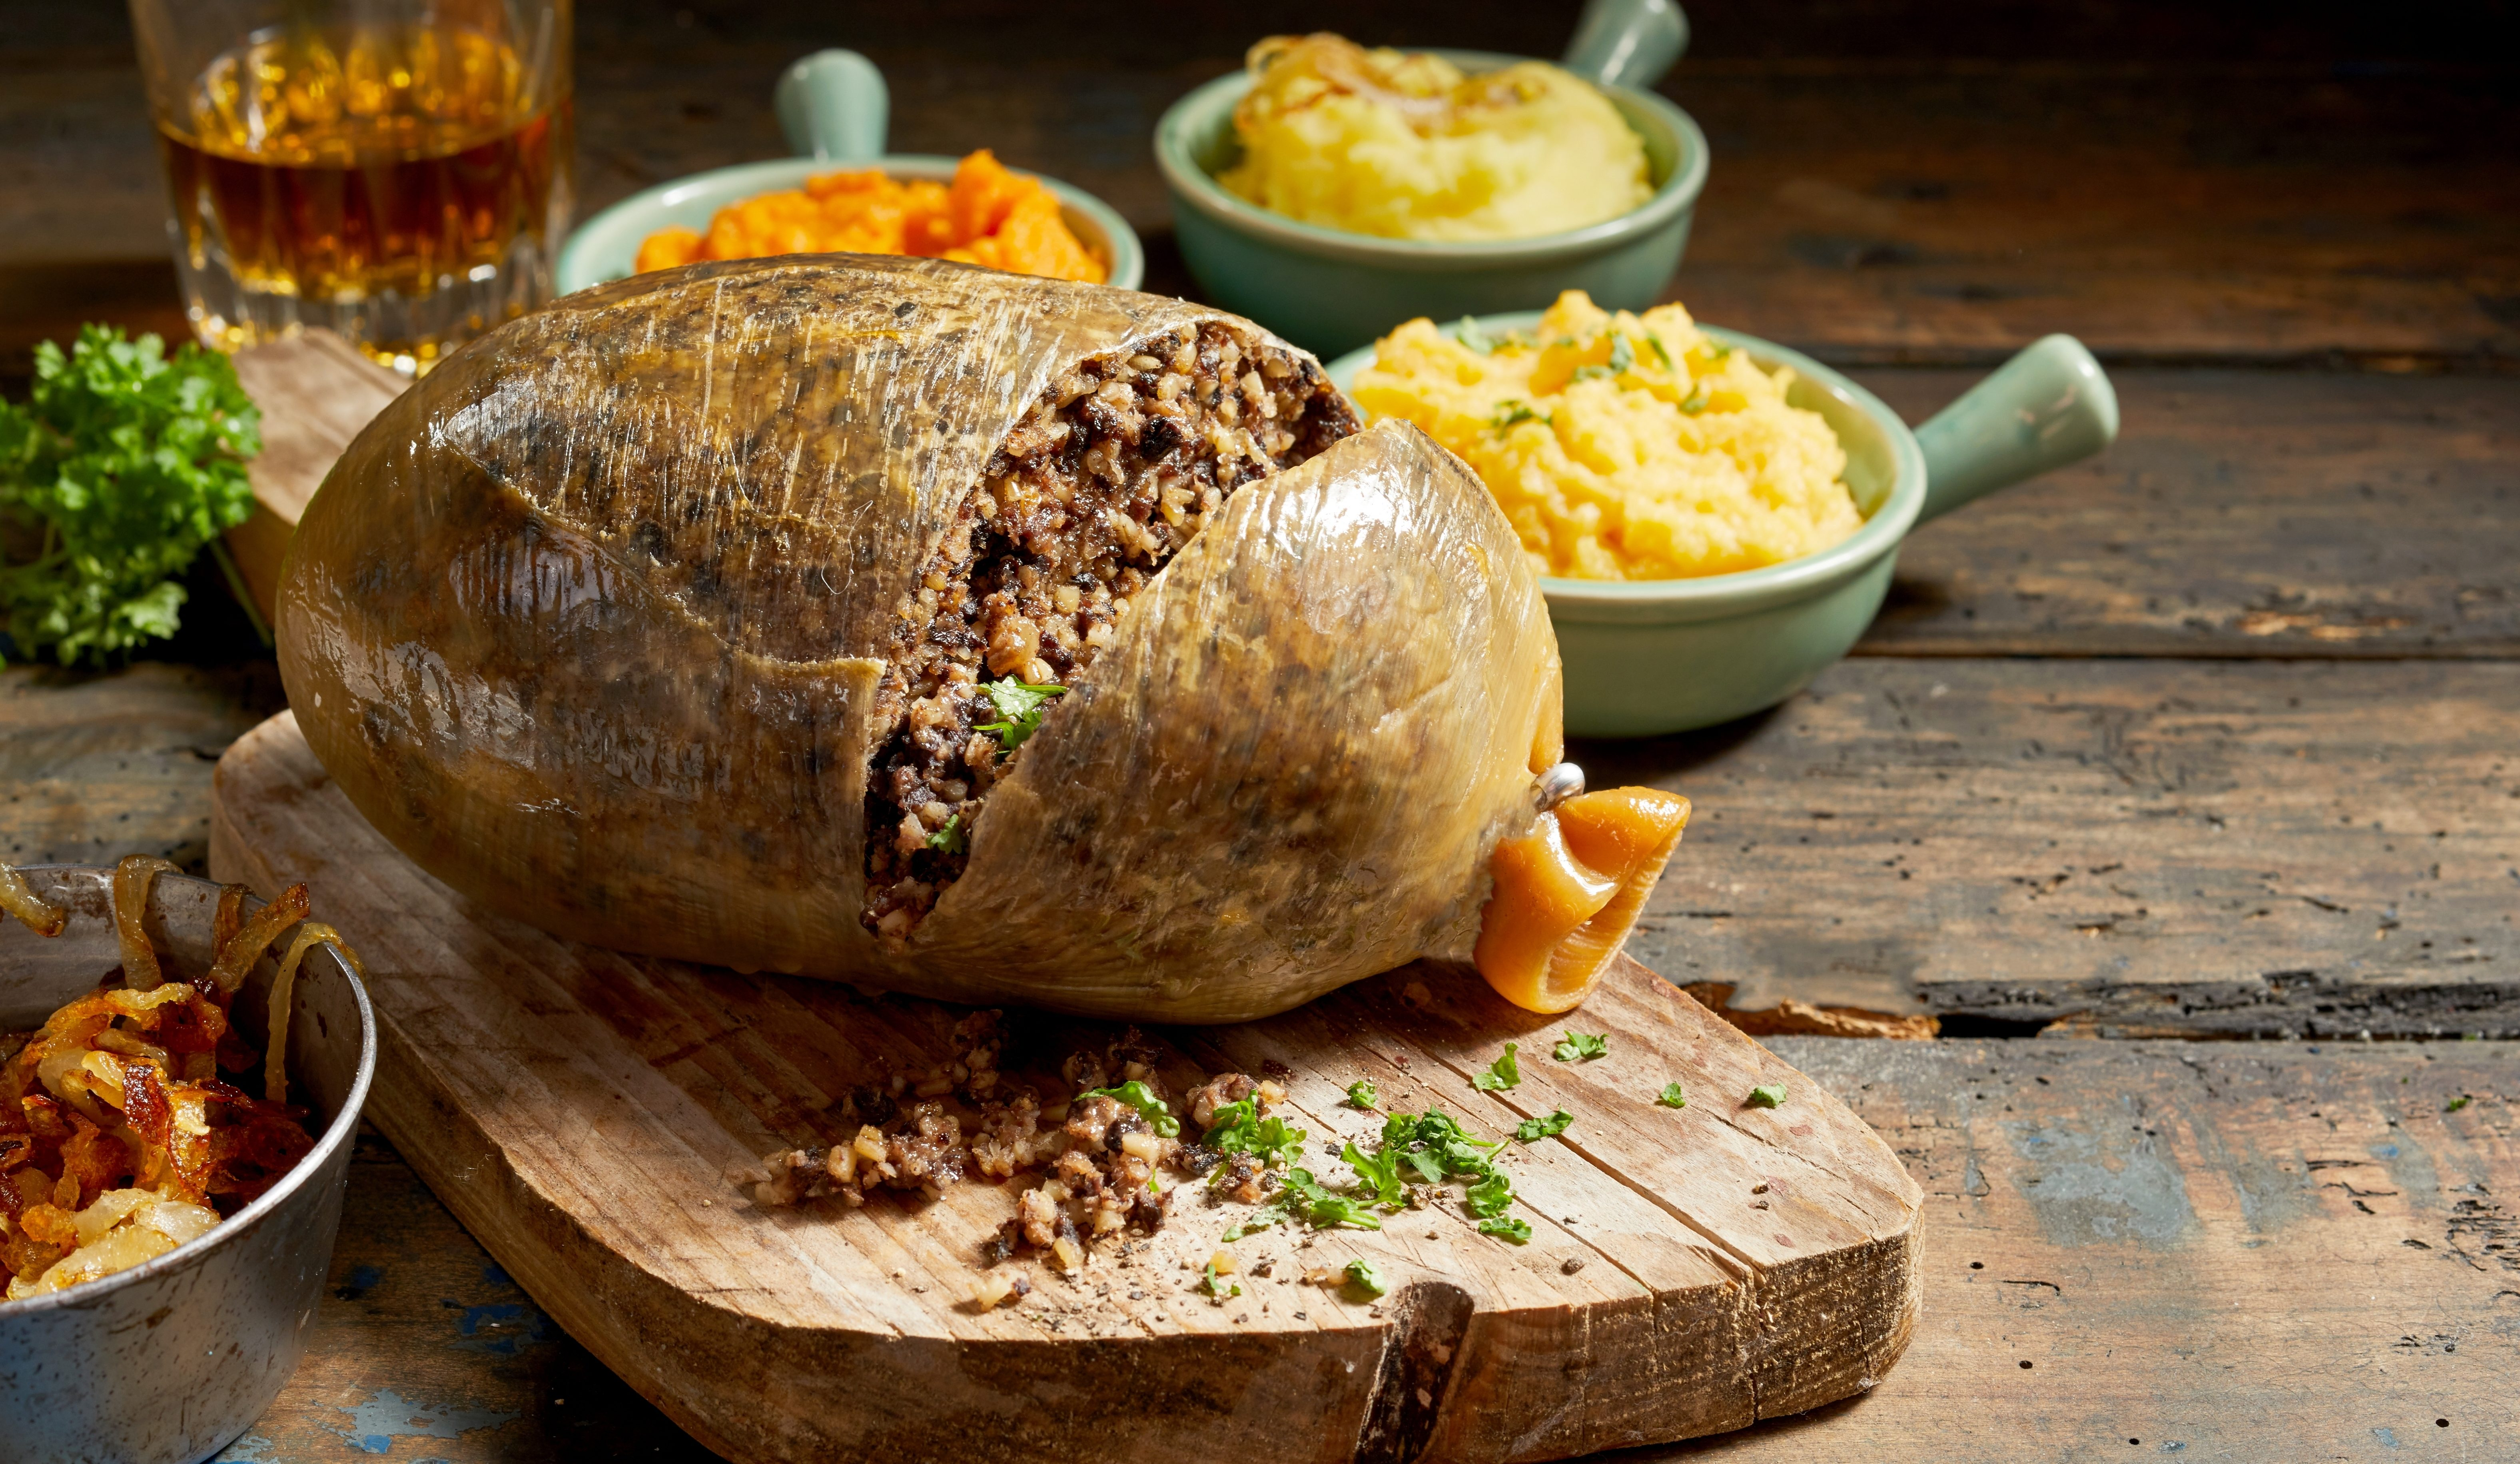 A simple, traditional Haggis for Burns Night.